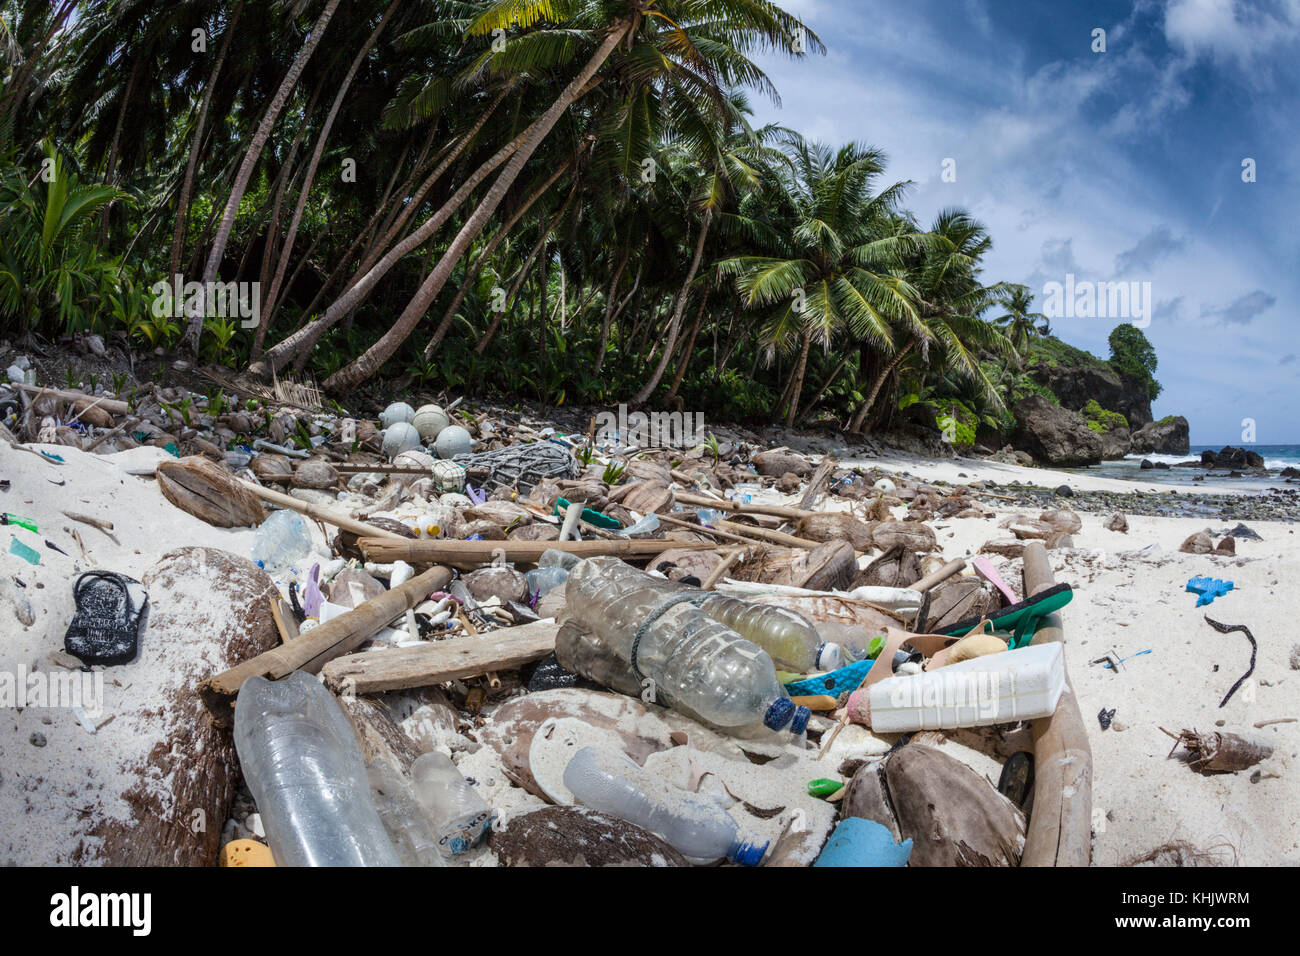 Plastic Waste washed up at Dolly Beach, Christmas Island, Australia - Stock Image